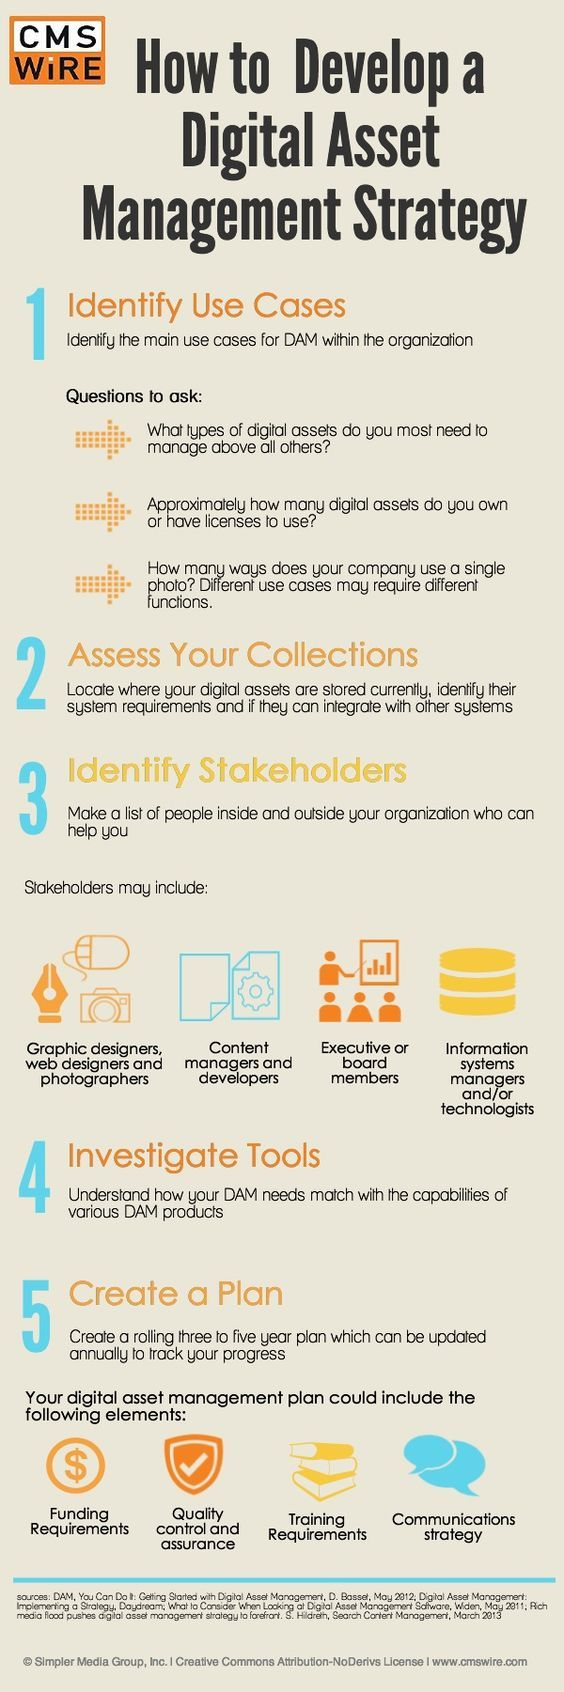 How to Develop a Digital Asset Management Strategy